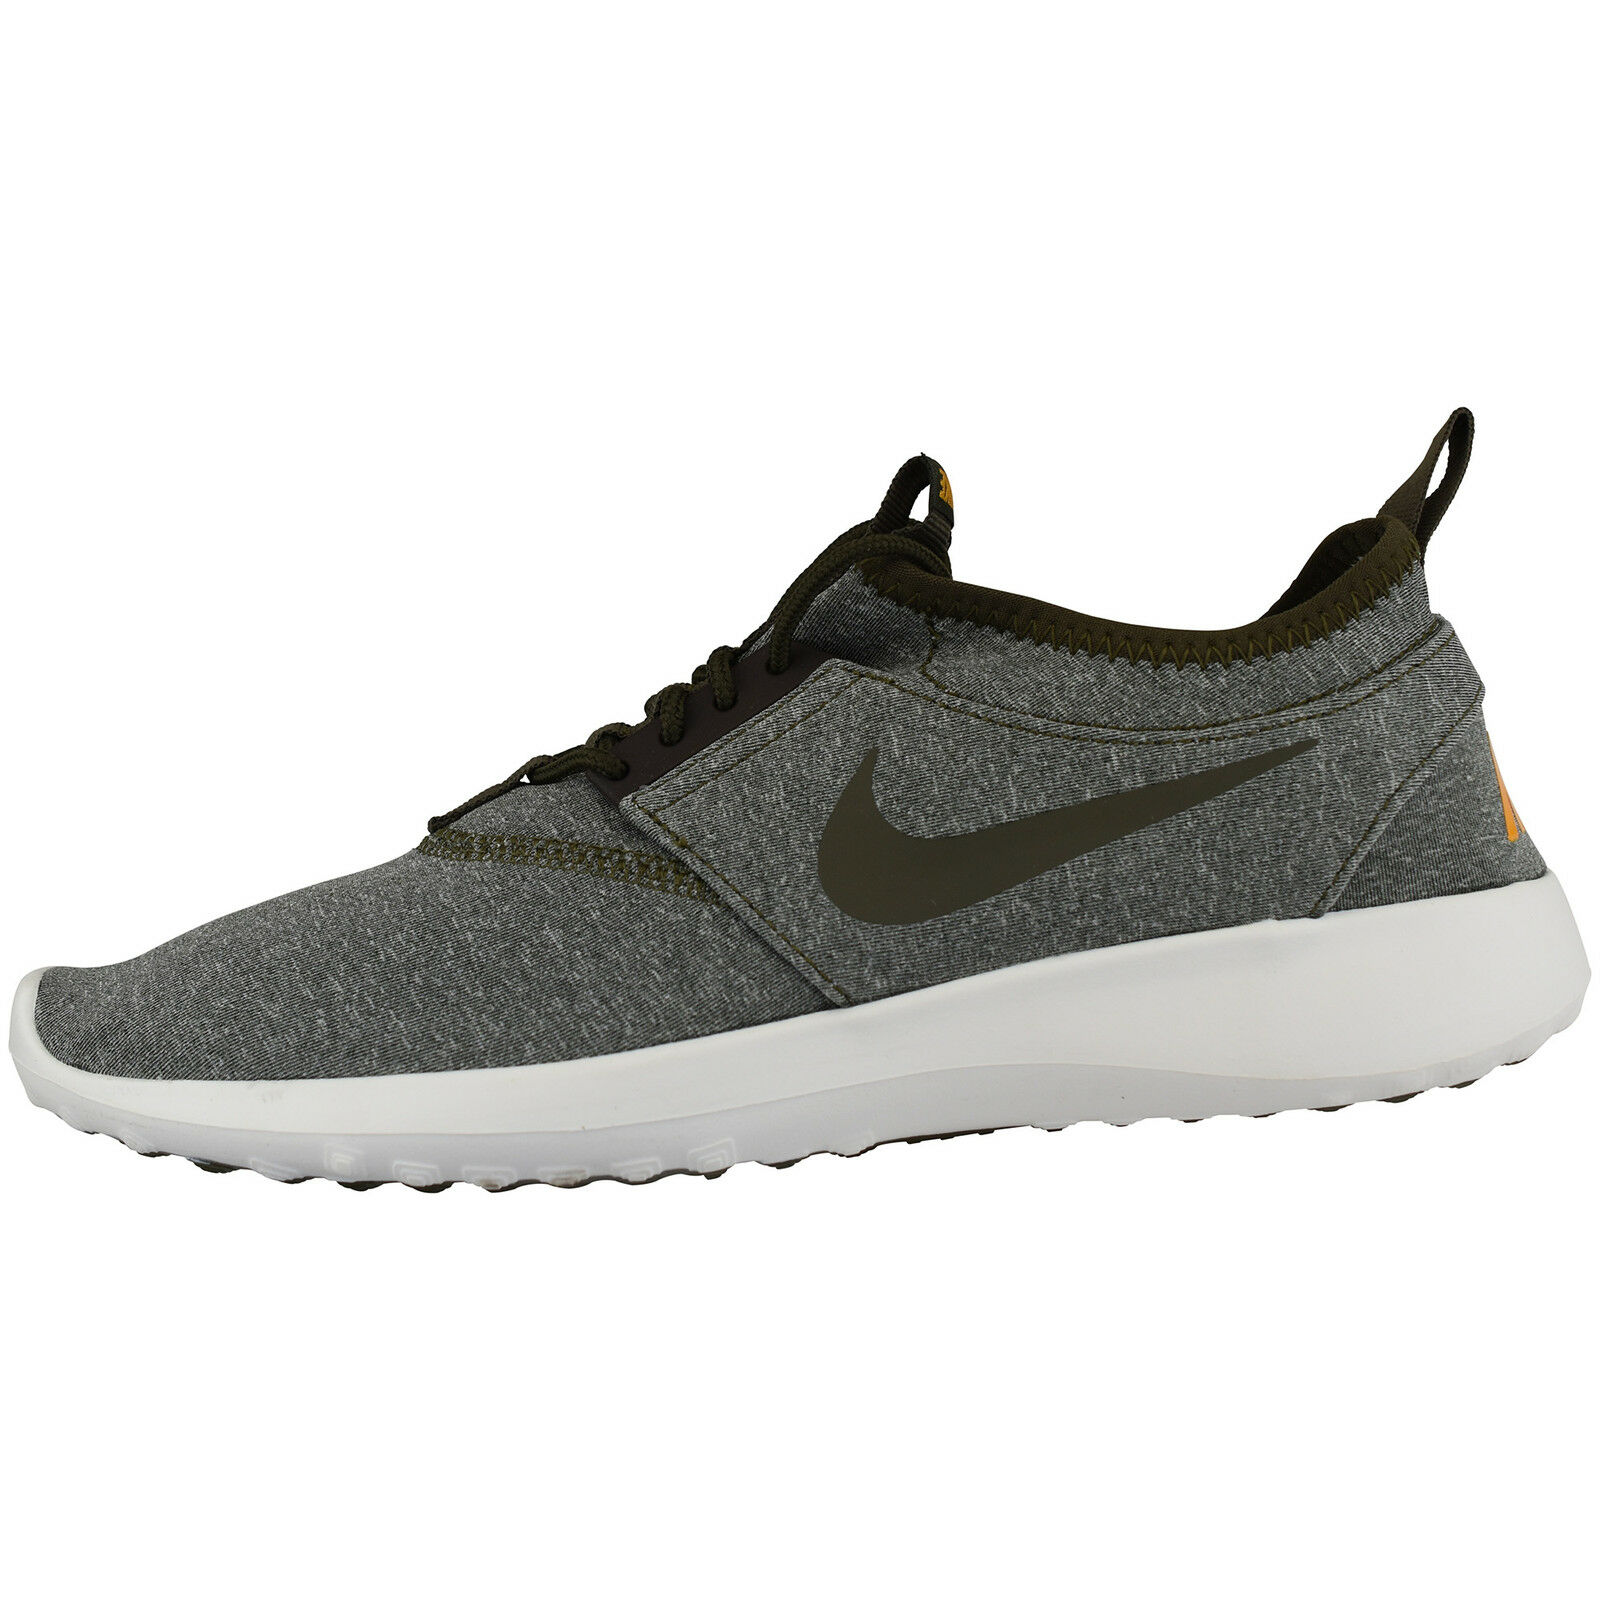 mode de vie Femme nike juvenate juvenate juvenate se 862335-300 chaussures de formateurs occasionnels 52924e